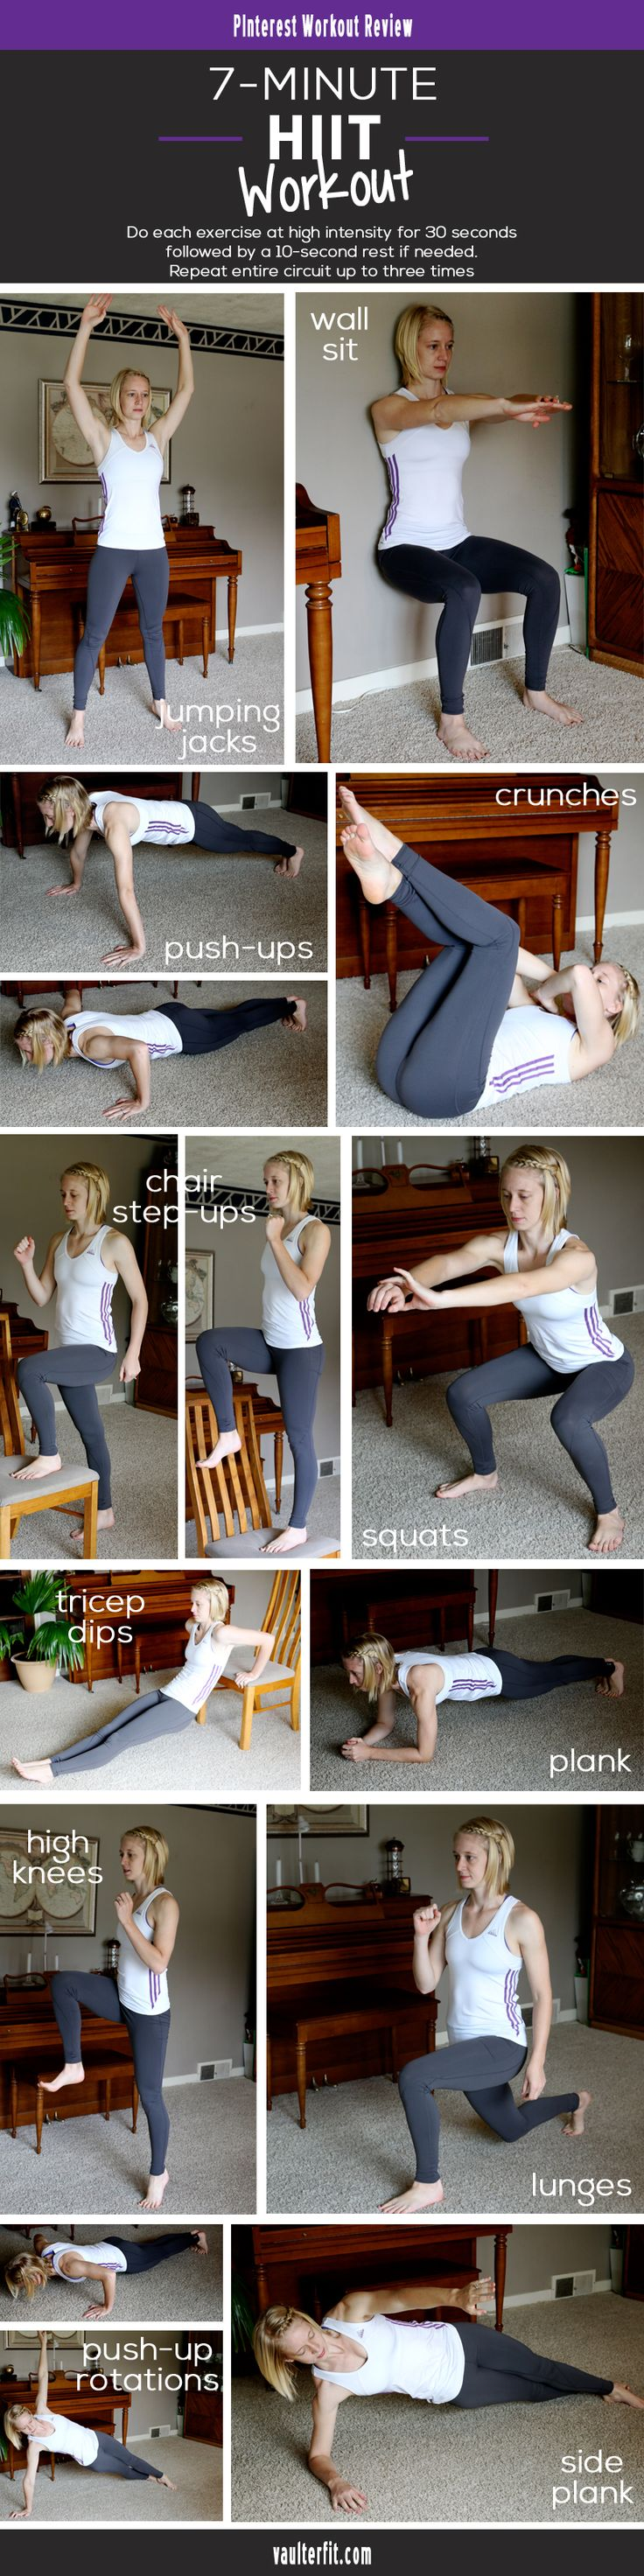 Workout Review: 7-minute HIIT Workout